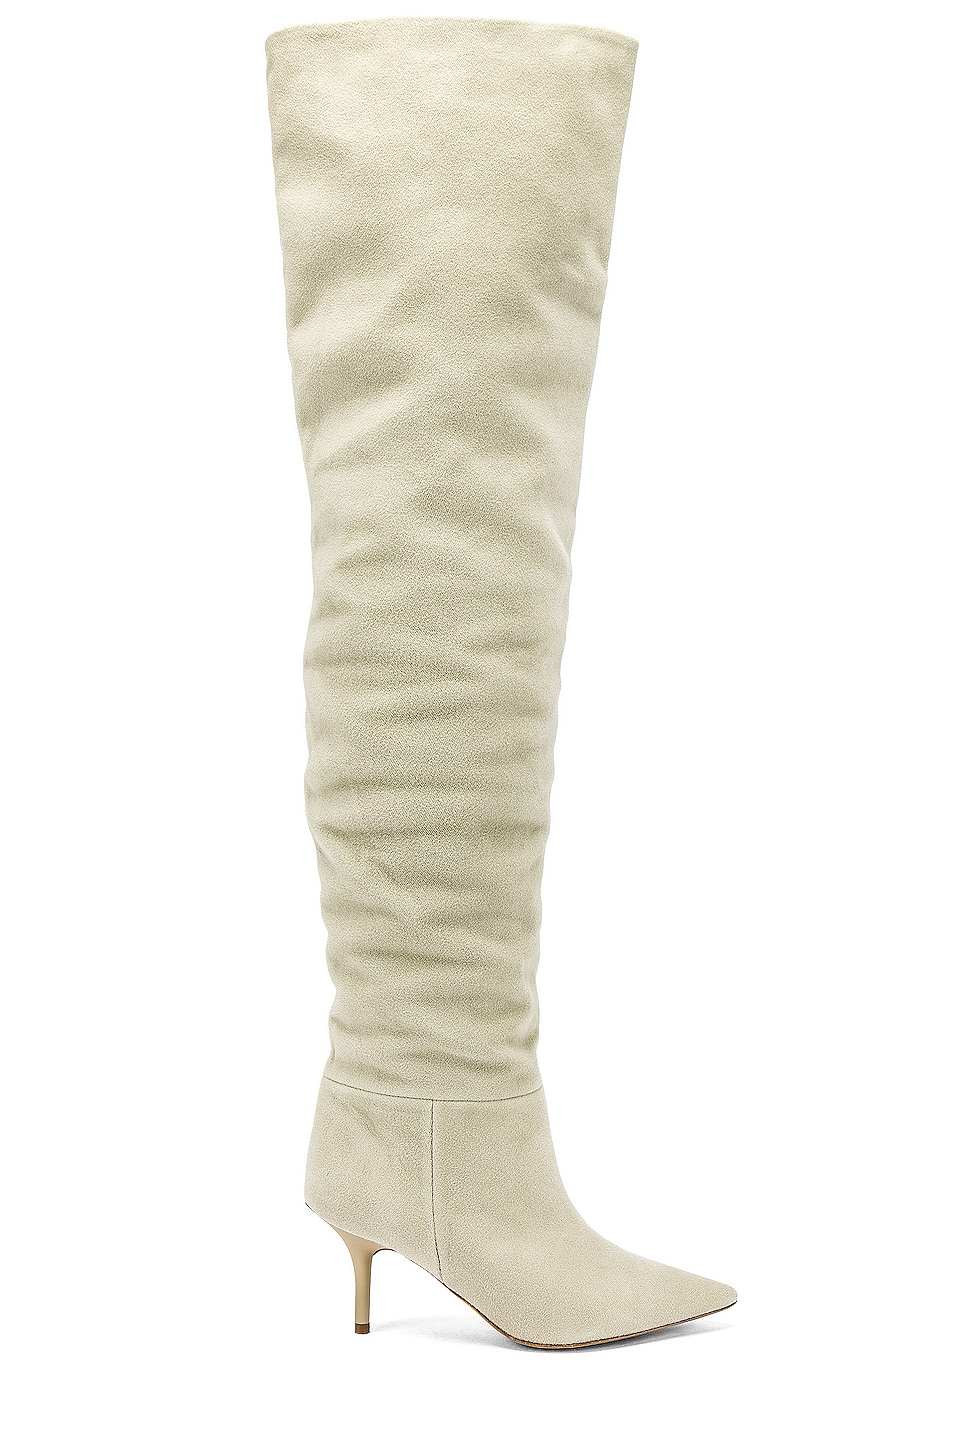 YEEZY SEASON 8 Thigh High Boot in Ghost